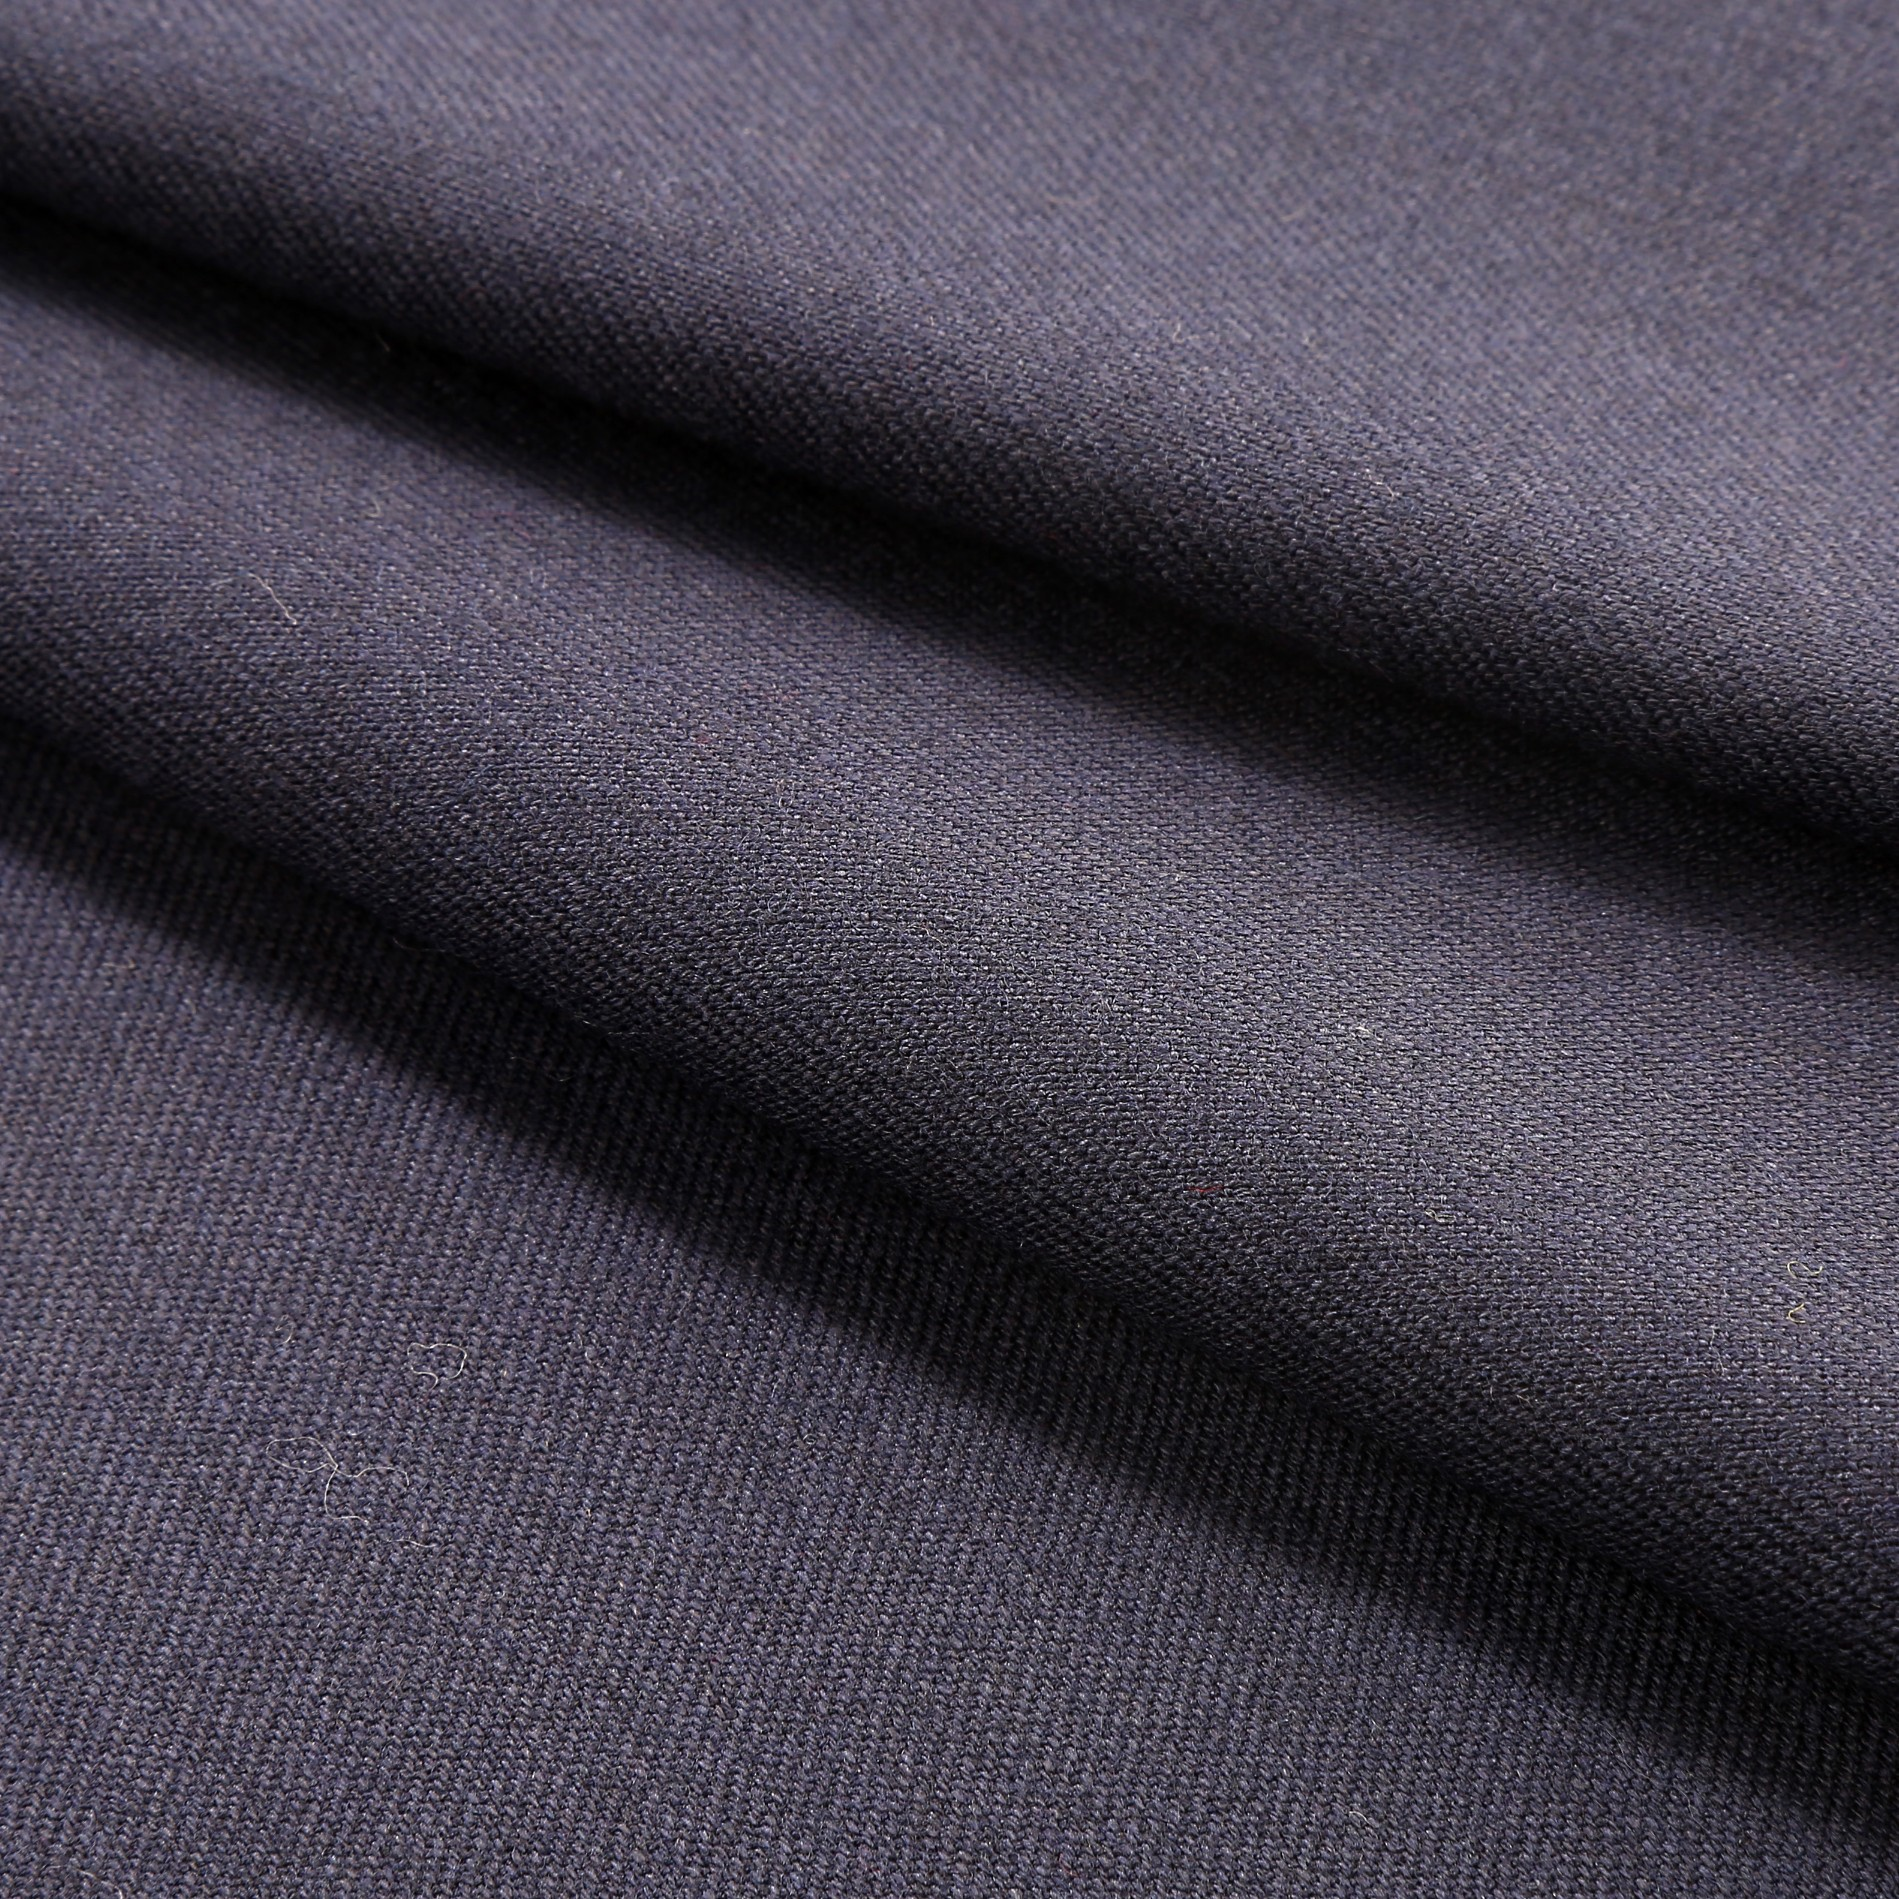 wool polyester fabric Manufacturers, wool polyester fabric Factory, Supply wool polyester fabric